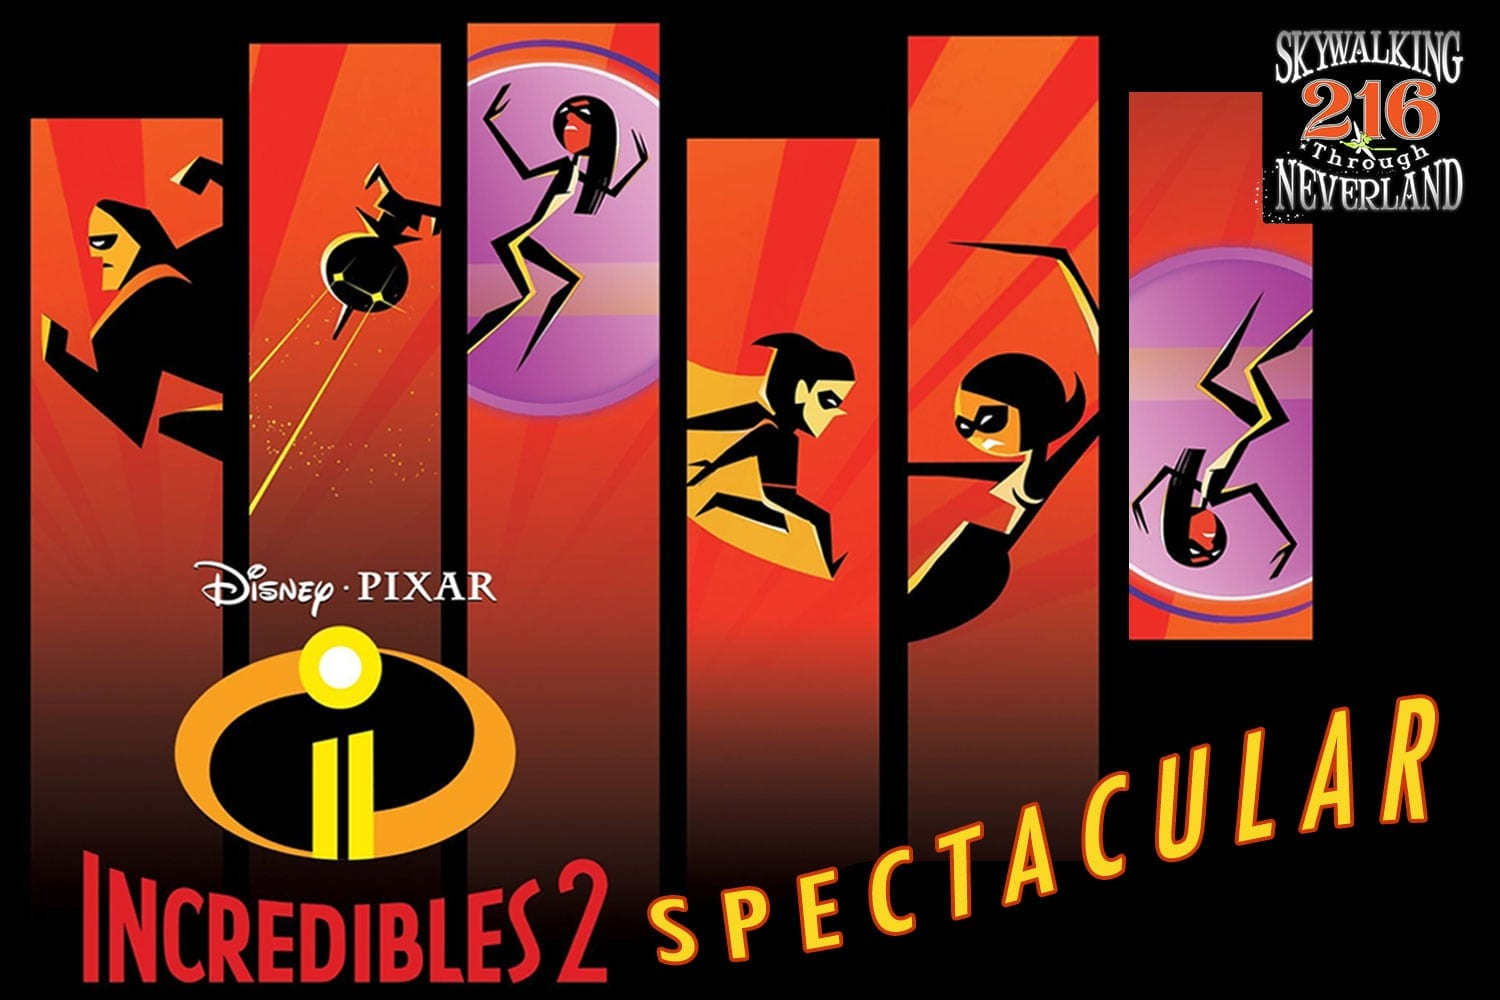 Skywalking Through Neverland #216: Incredibles 2 Spectacular